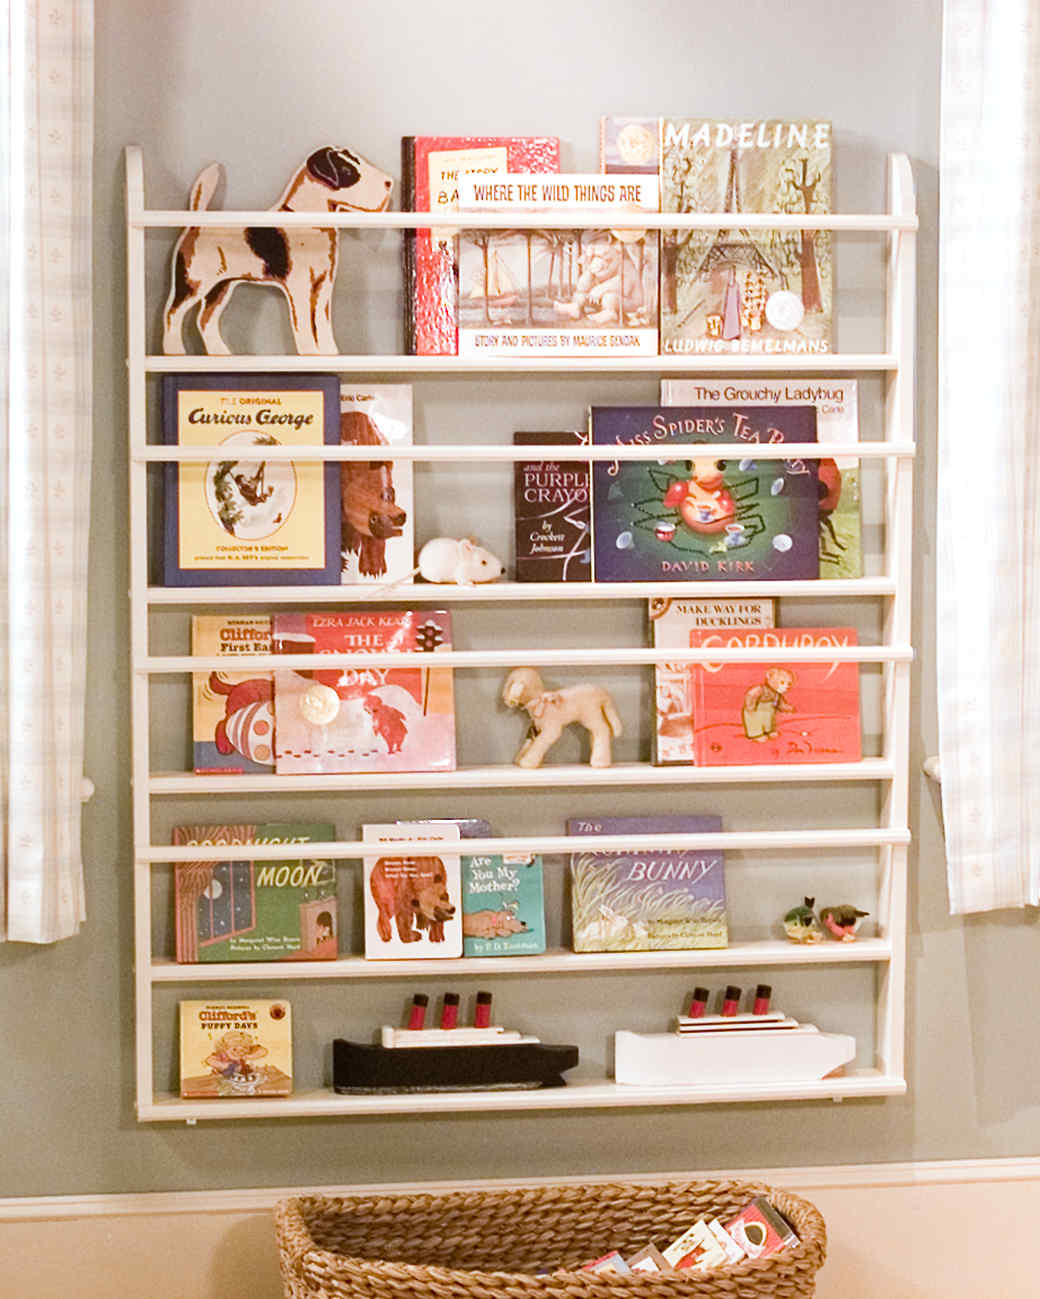 Bookshelves Images making children's bookshelves | martha stewart